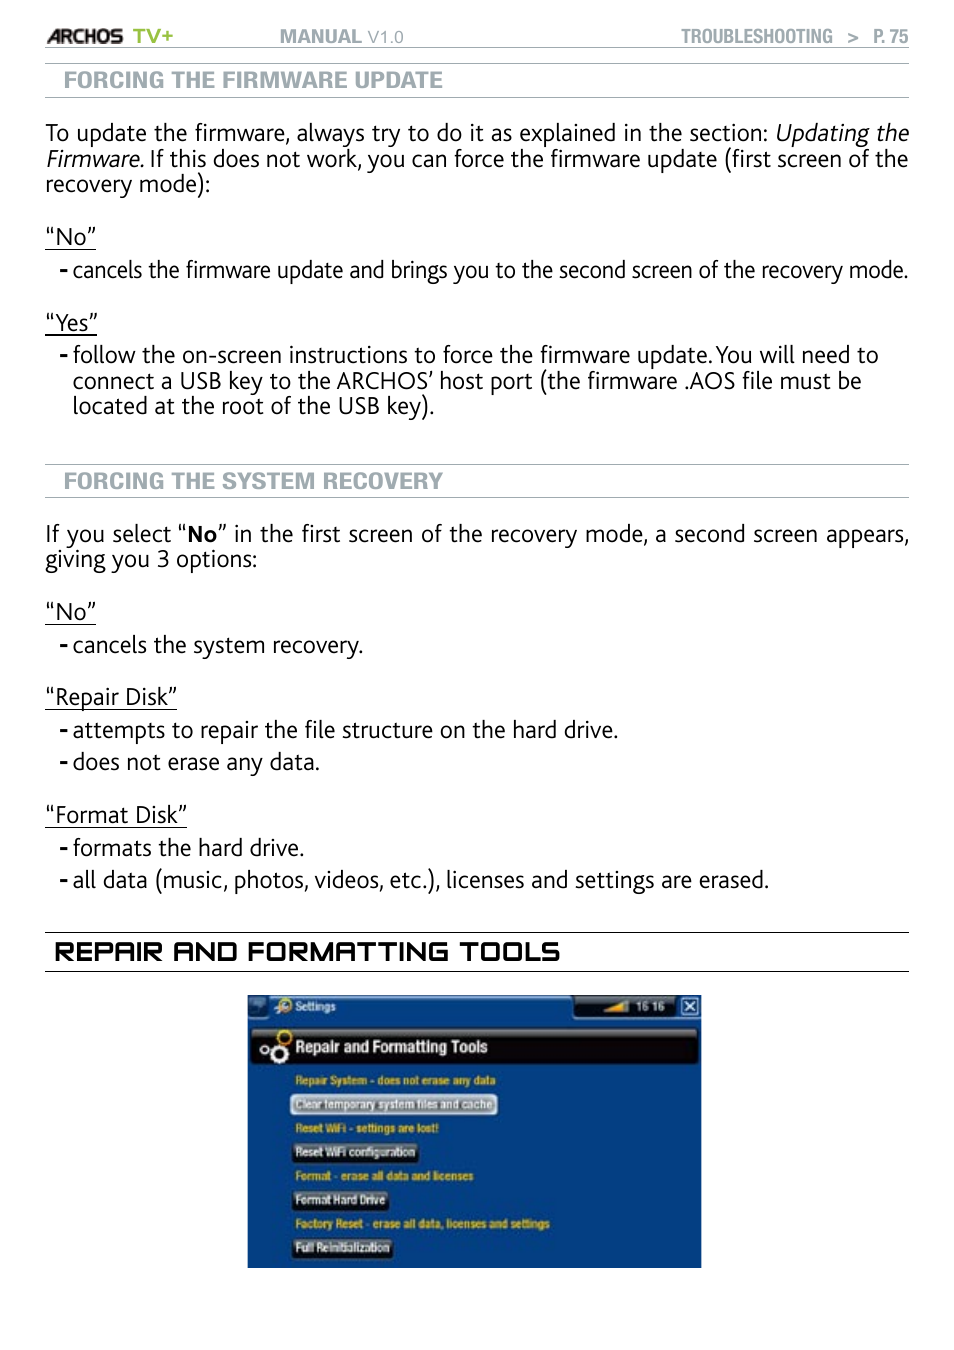 Repair and formatting tools | ARCHOS TV+ User Manual | Page